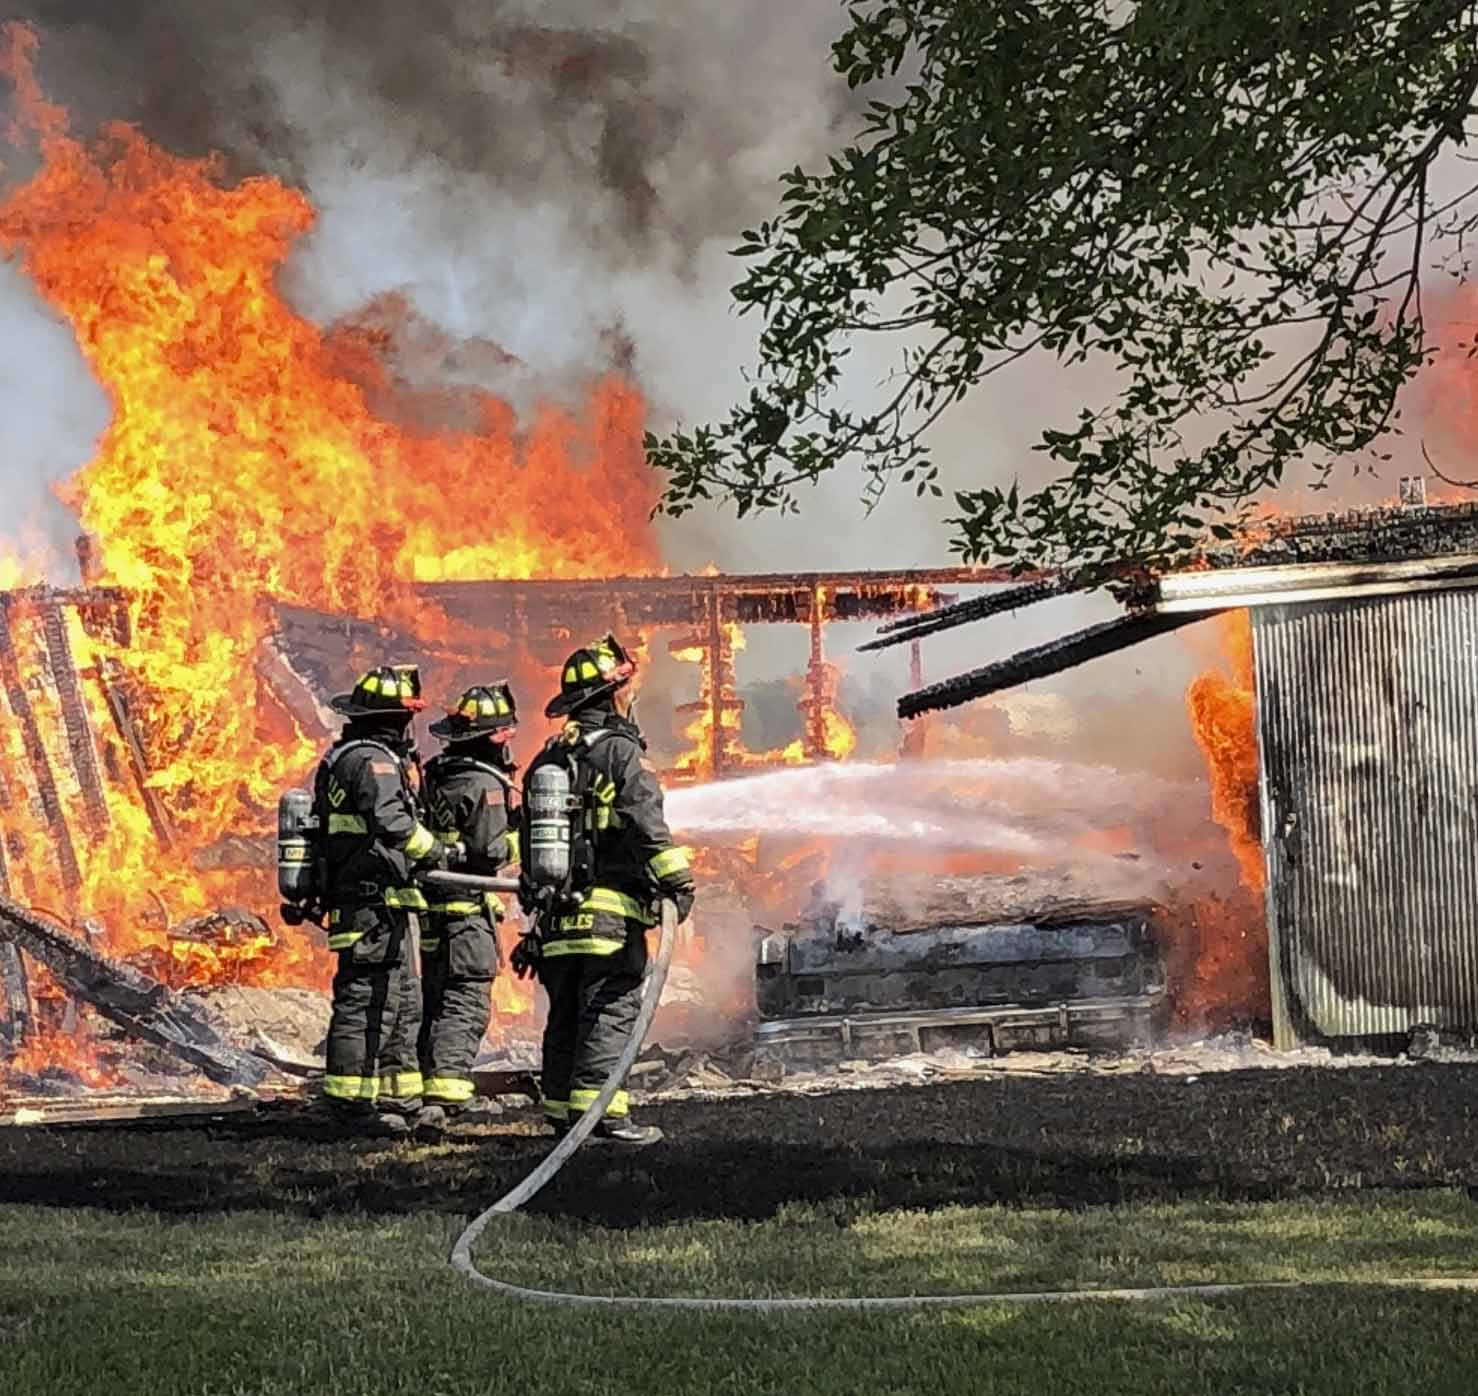 The Monticello Fire Department responded as flames consumed a garage at the Bob Helgens farm in rural Scotch Grove Aug. 3. (Photo by Mark Spensley)